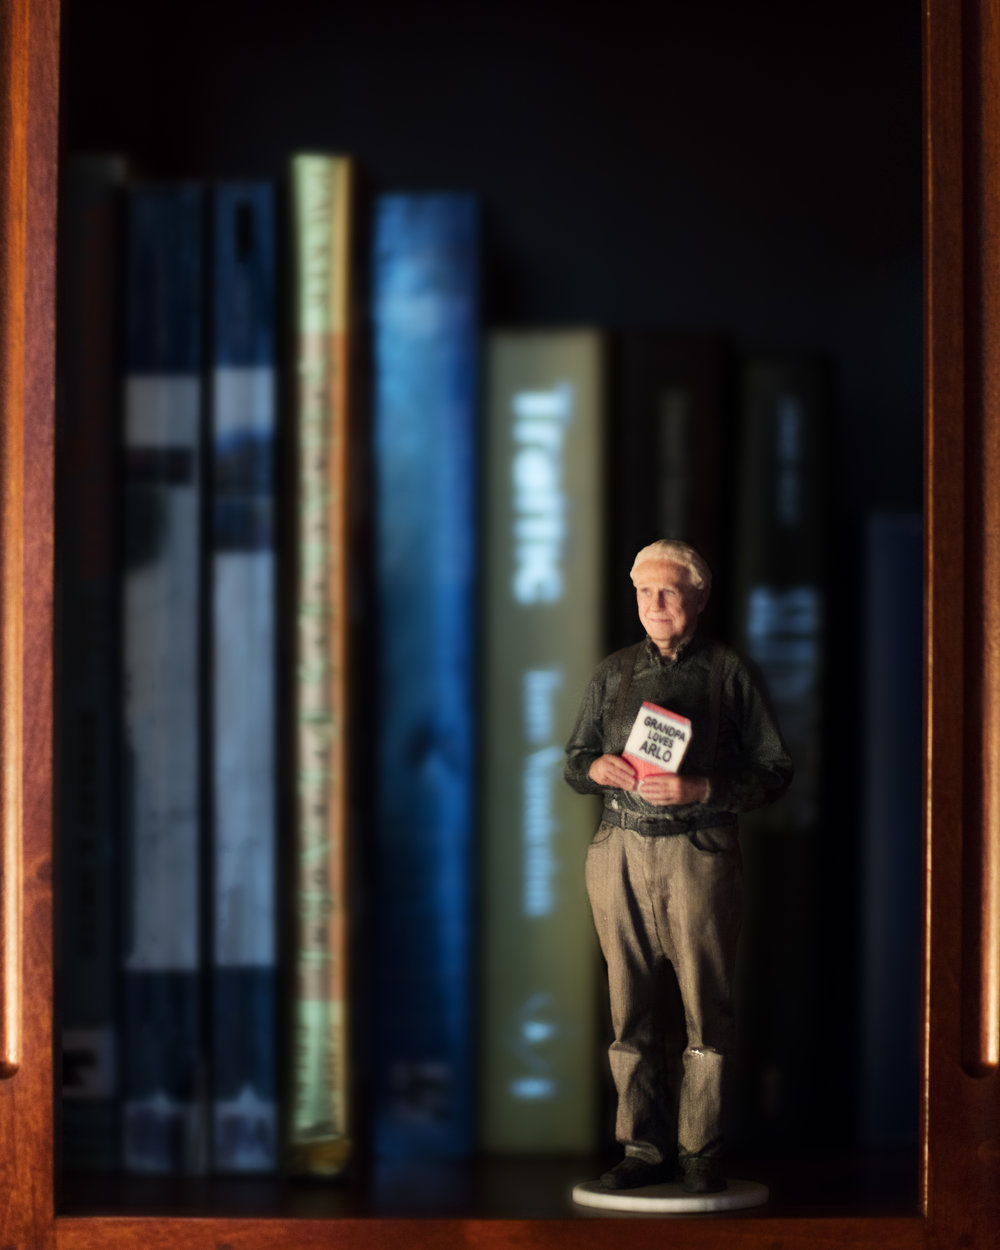 Grandpa on the bookshelf